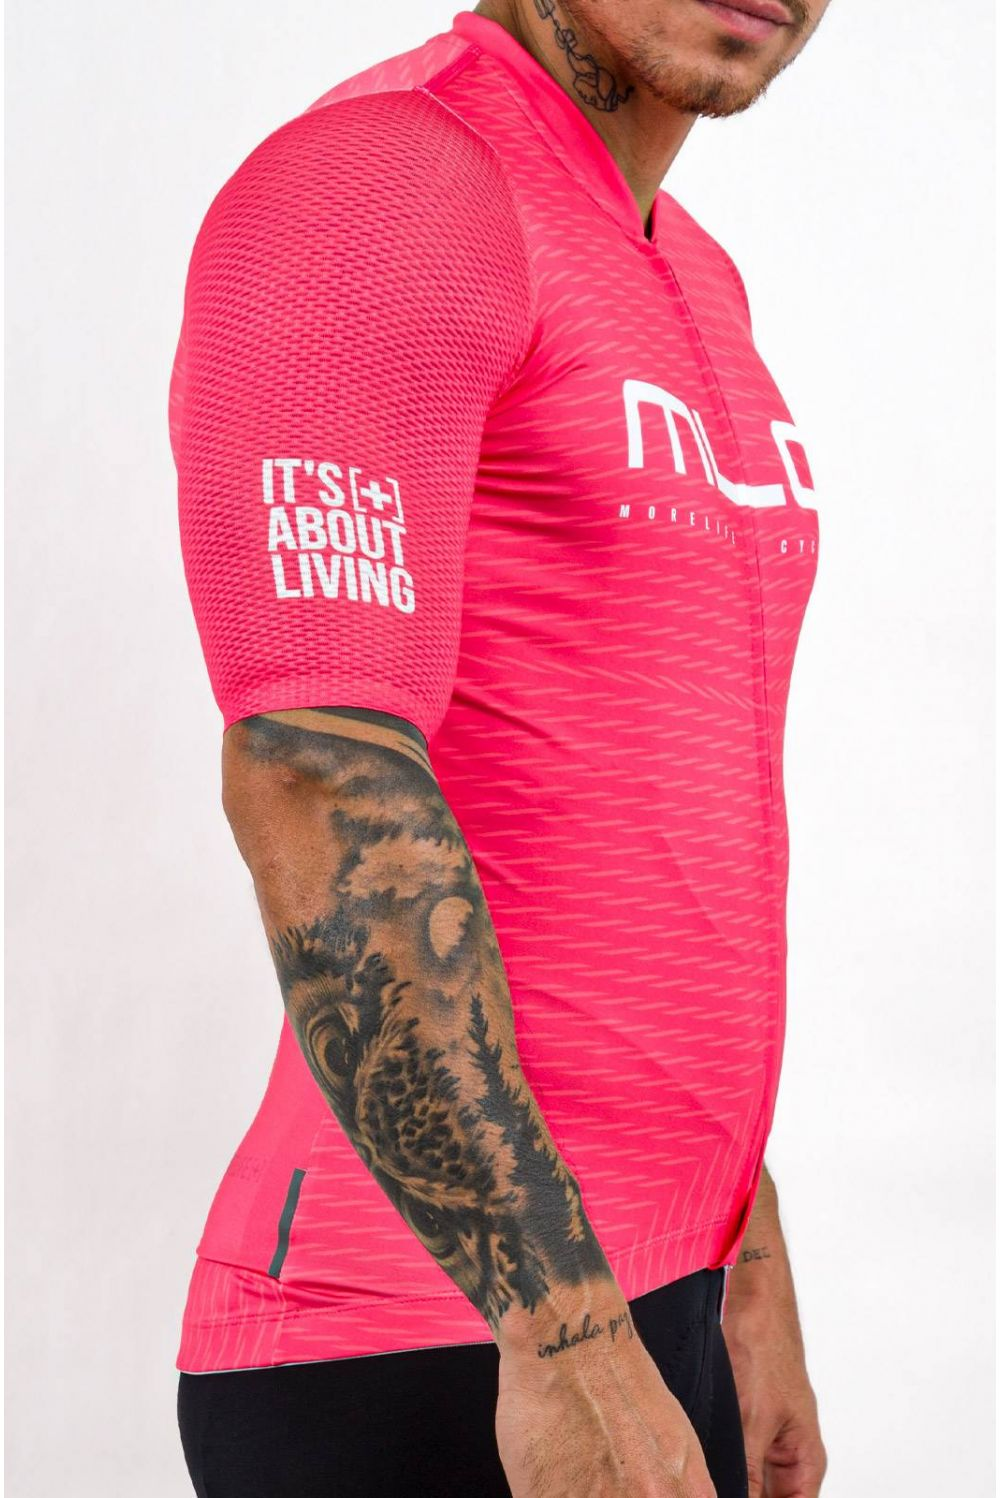 NEON PINK JERSEY CE2258H